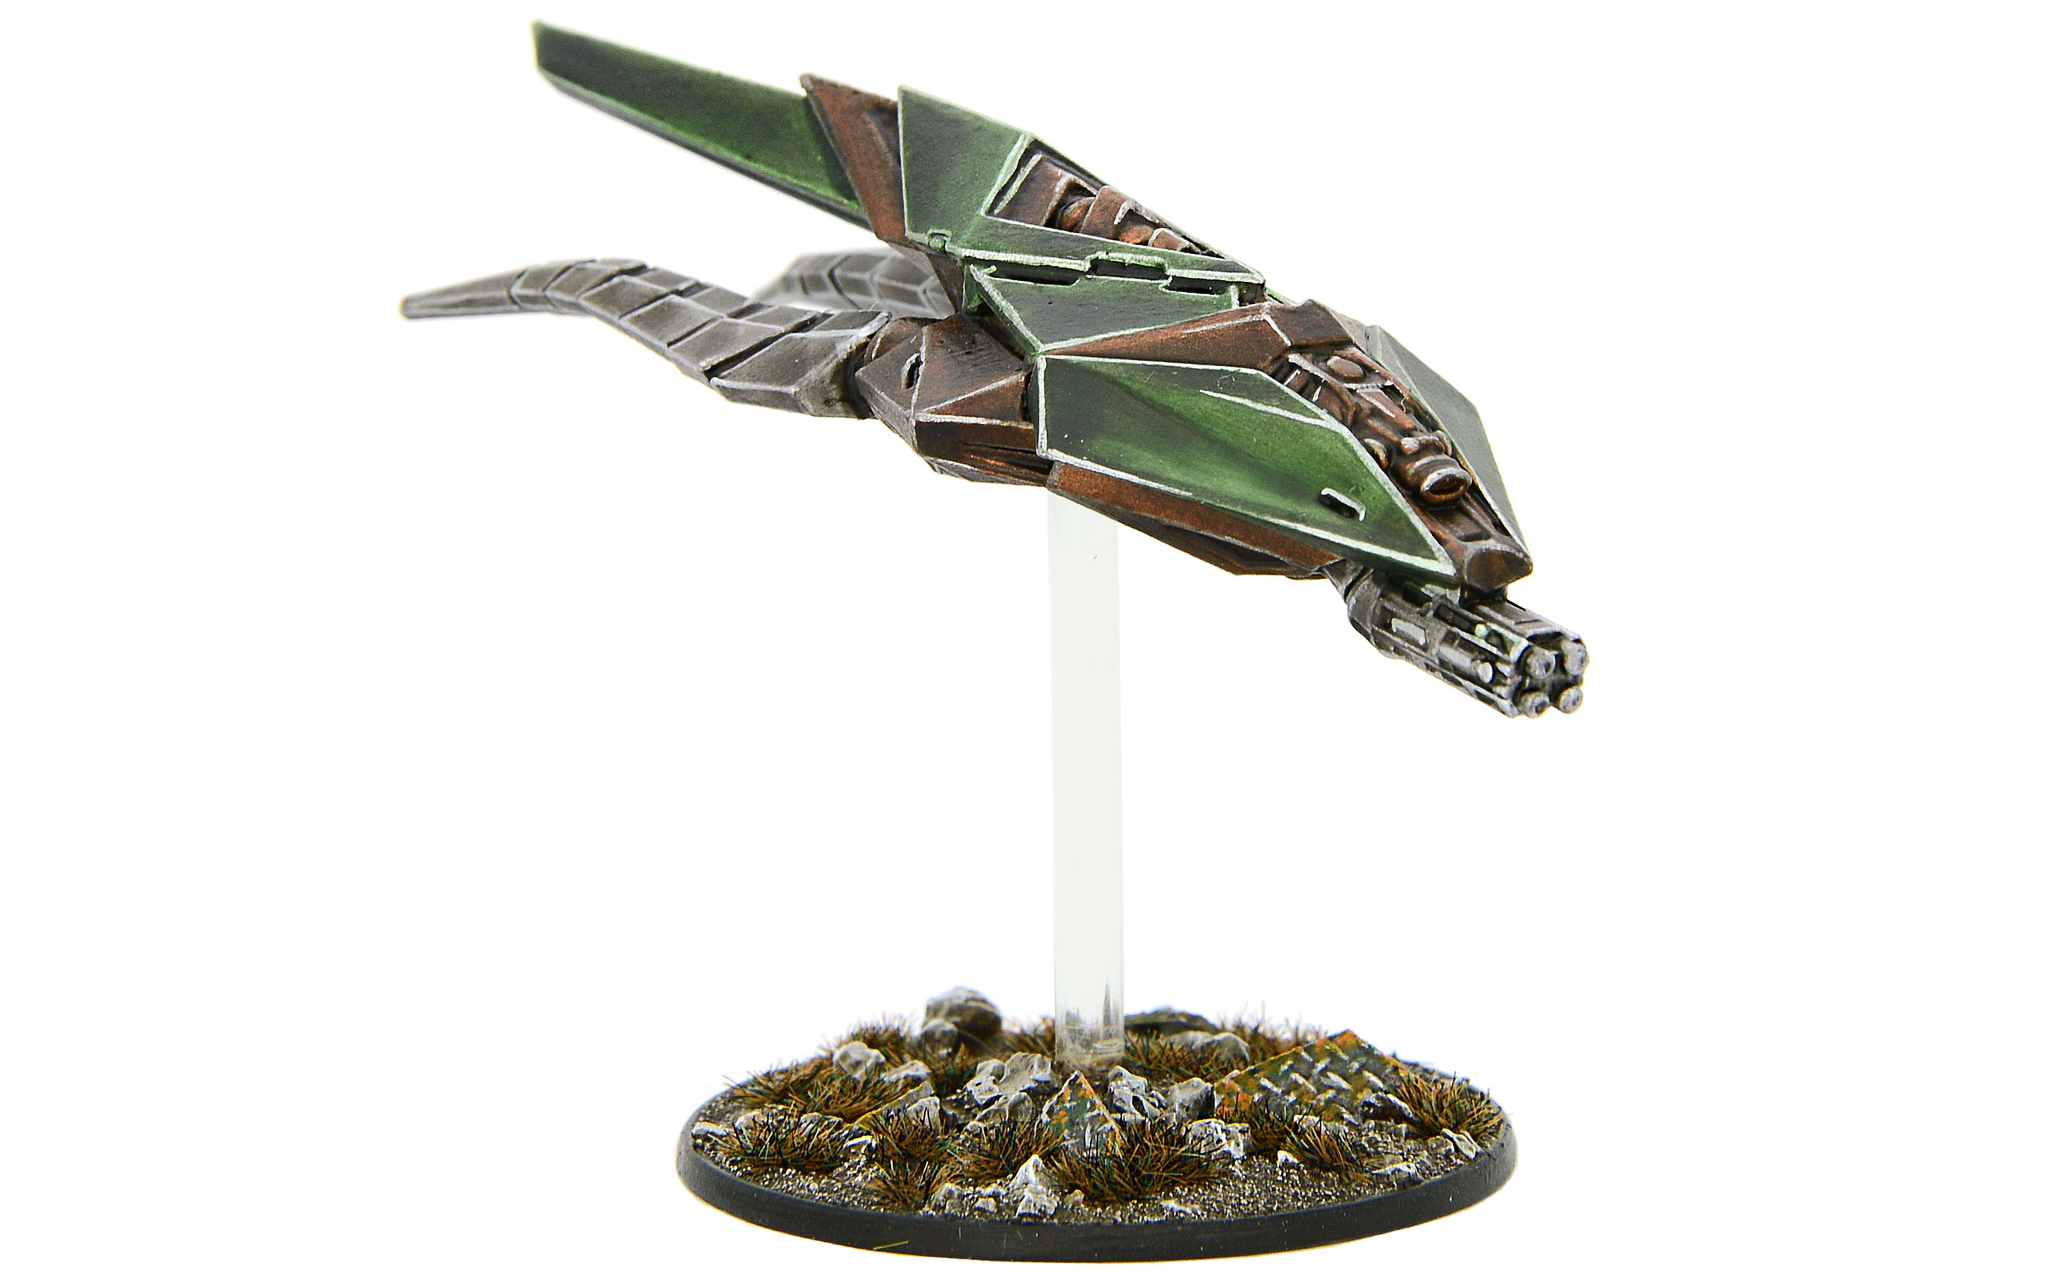 New Beyond the Gates of Antares Virai Weapon Drone with Flamer Array